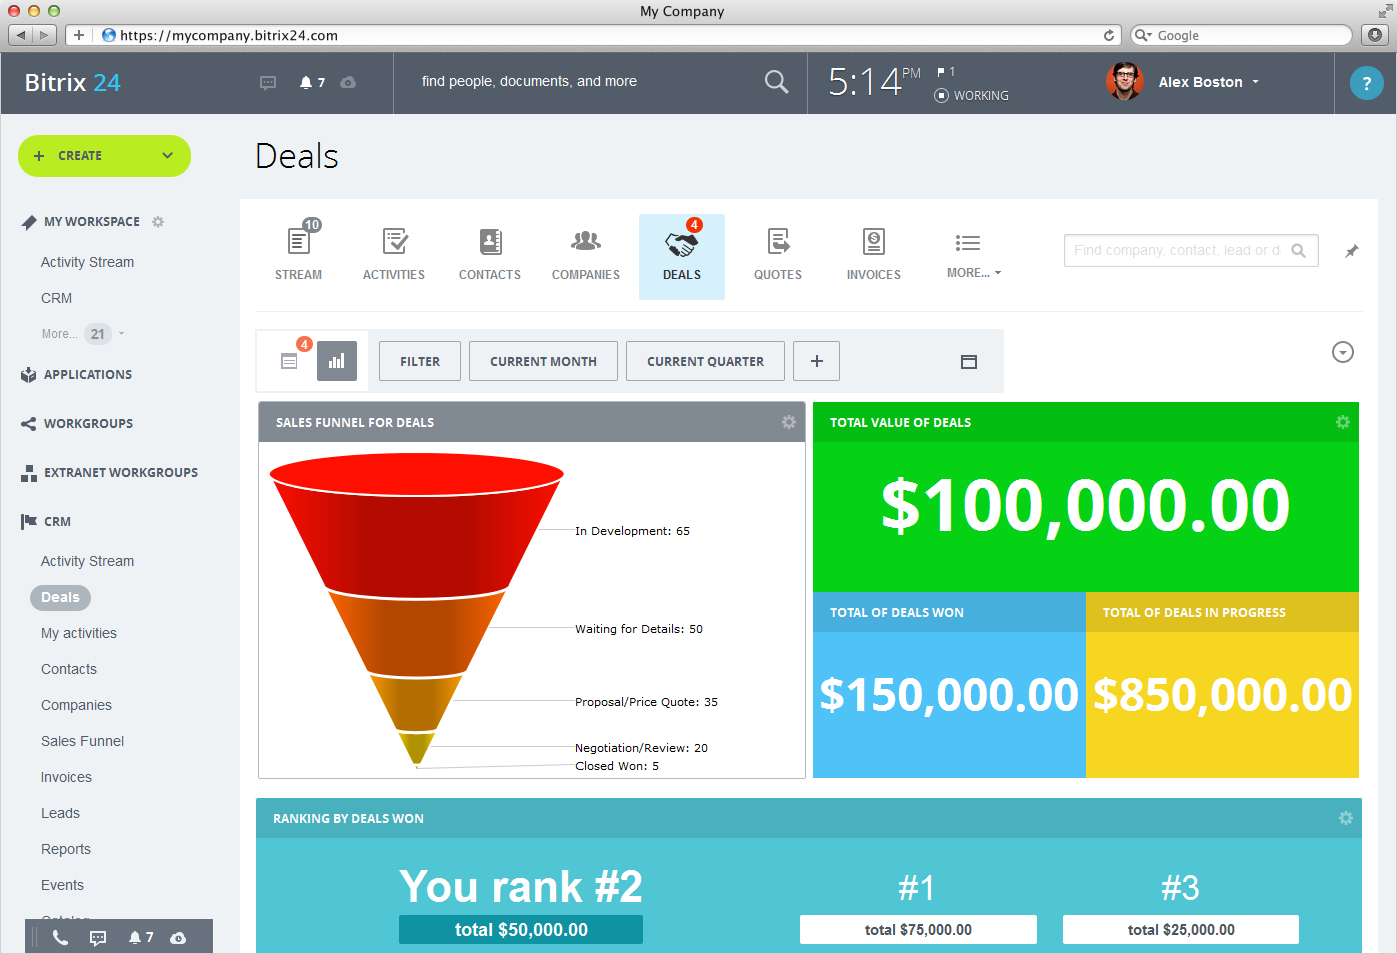 Free Crm Software | Crm Products | Bitrix24 Crm Software | Blkpros And Freeware Crm Excel Template